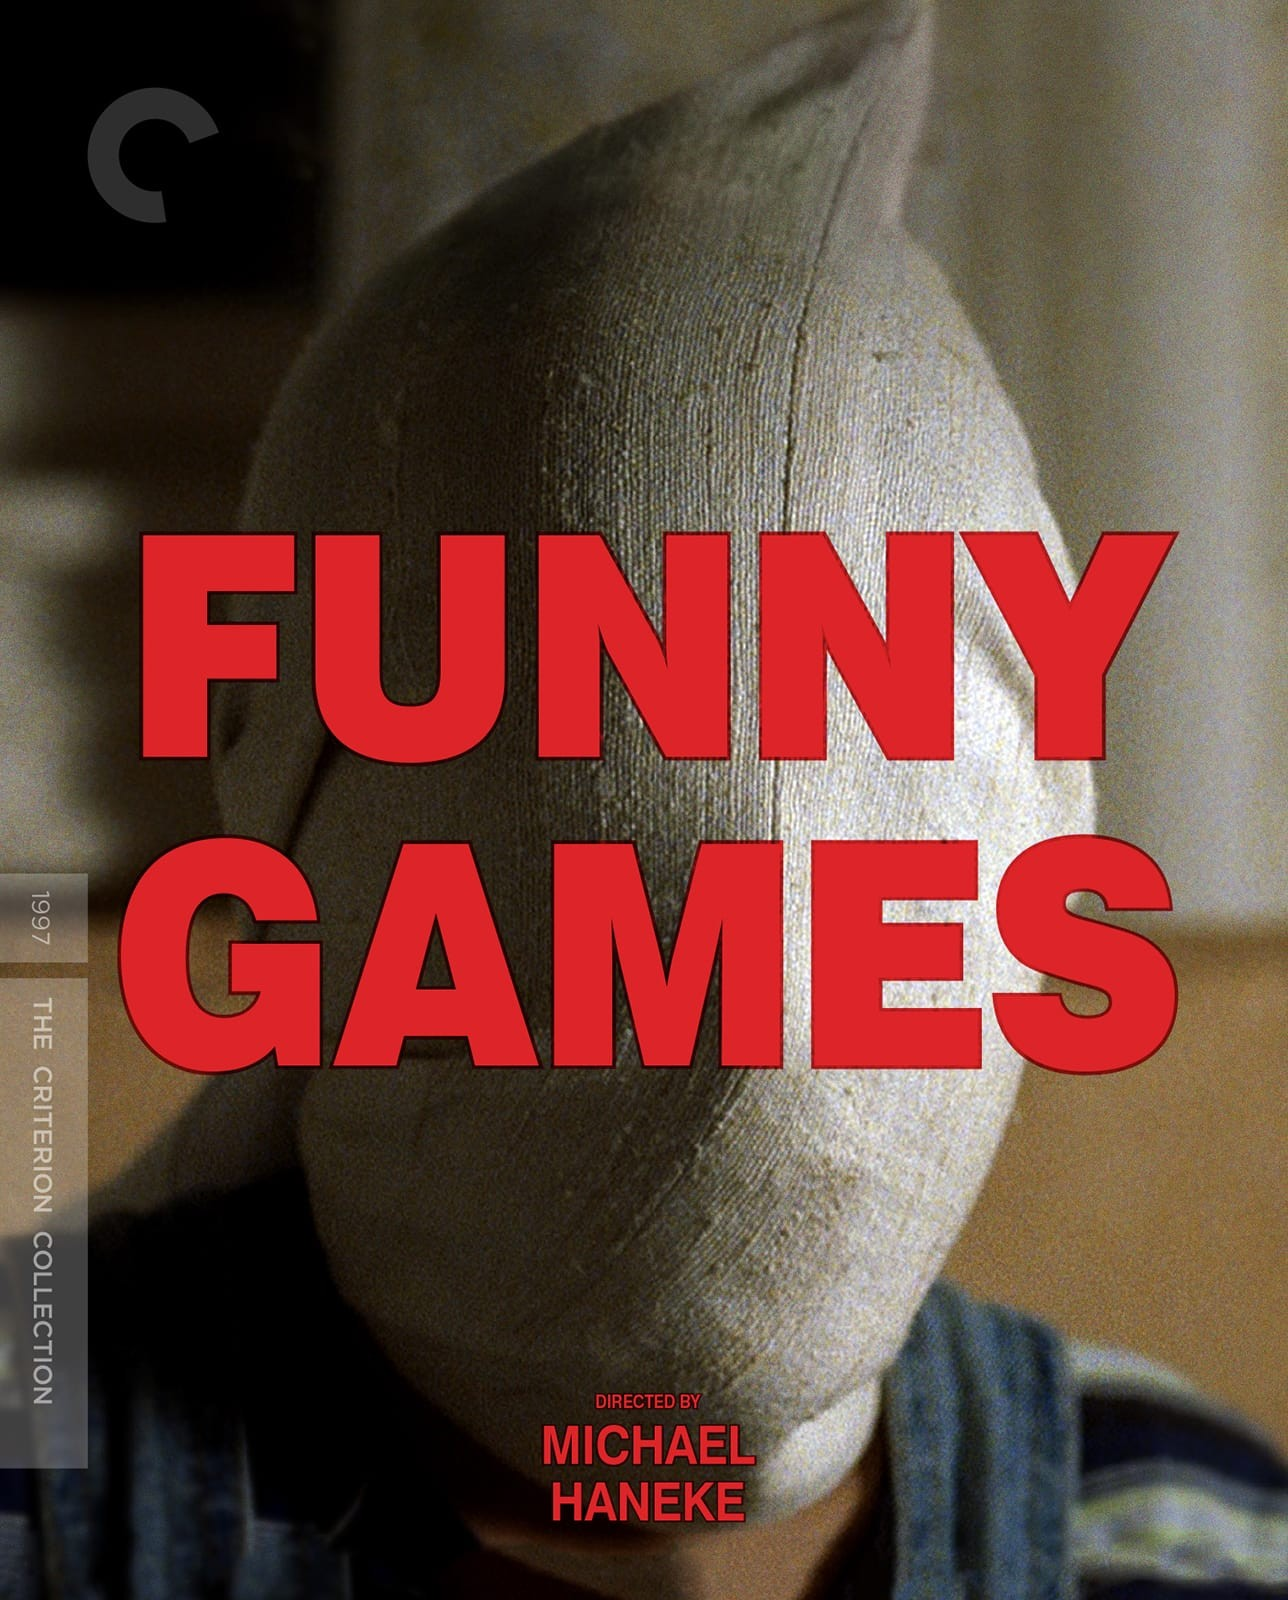 Funny Games (1997) | The Criterion Collection